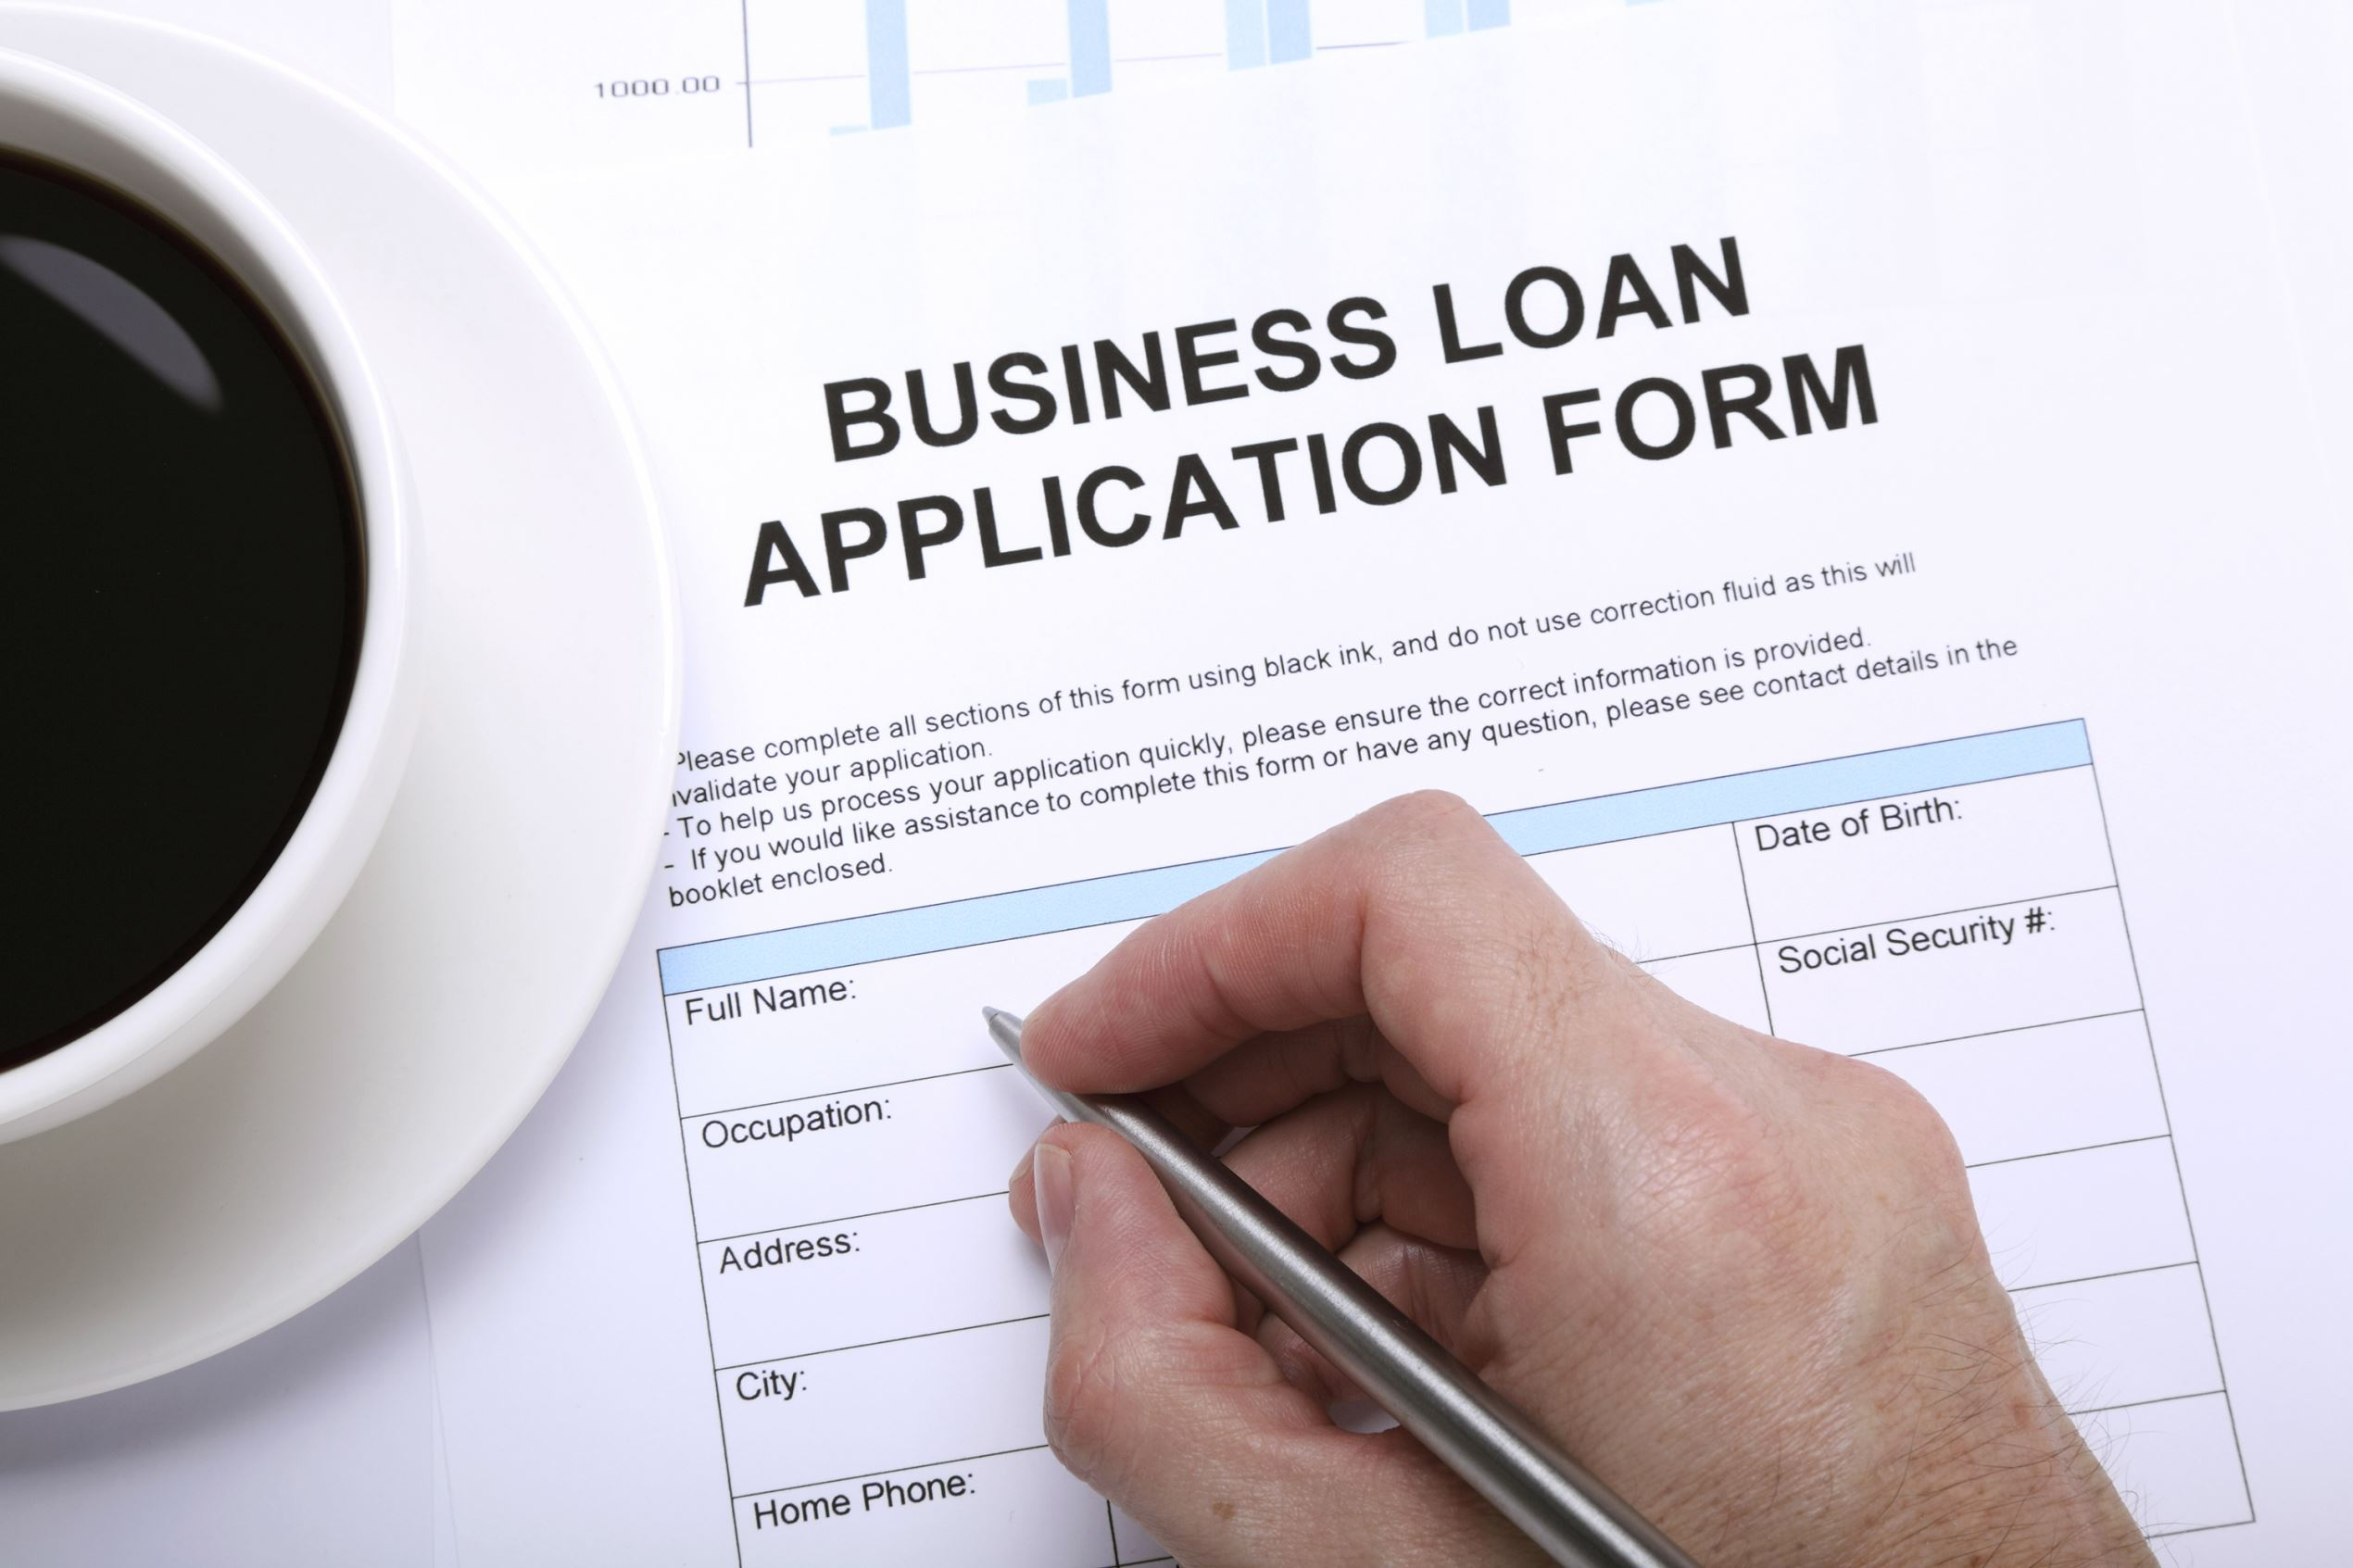 Business loan form. Sadeugra/Getty Images